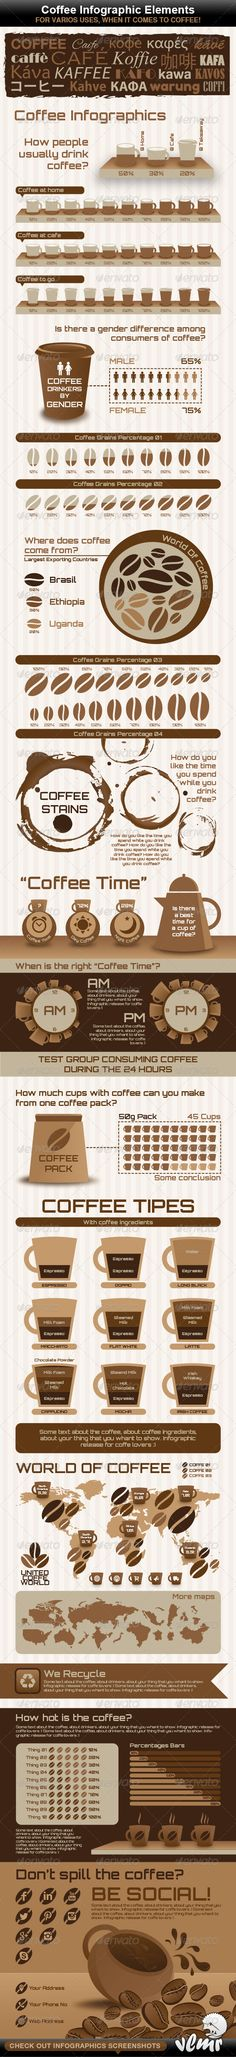 Coffee #infographic #infografía